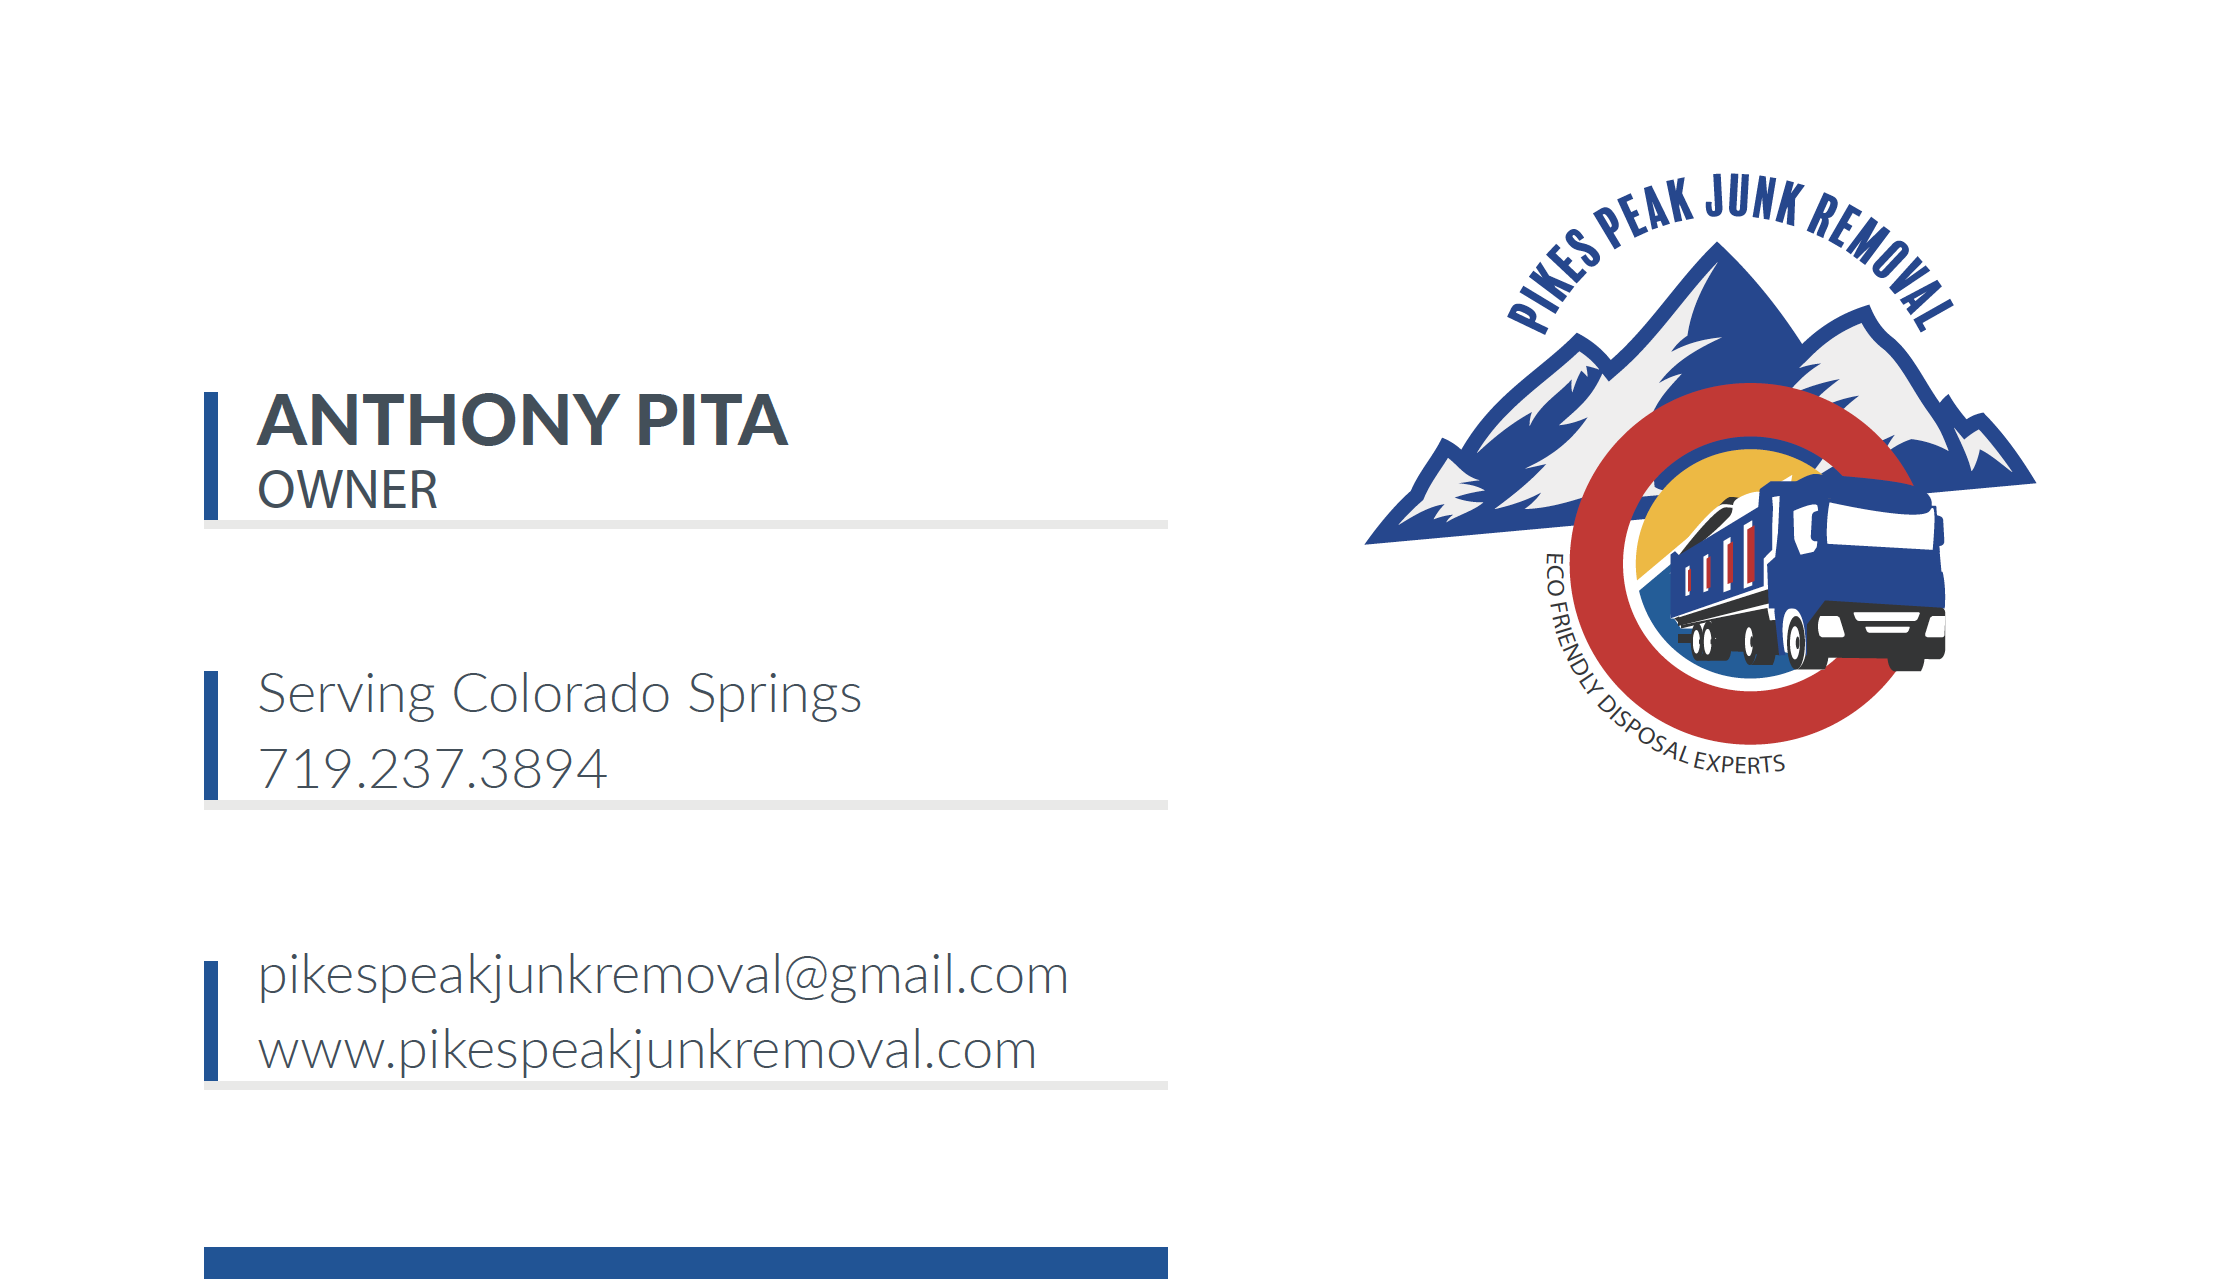 Pikes Peak Junk Removal_Business Card_Fr